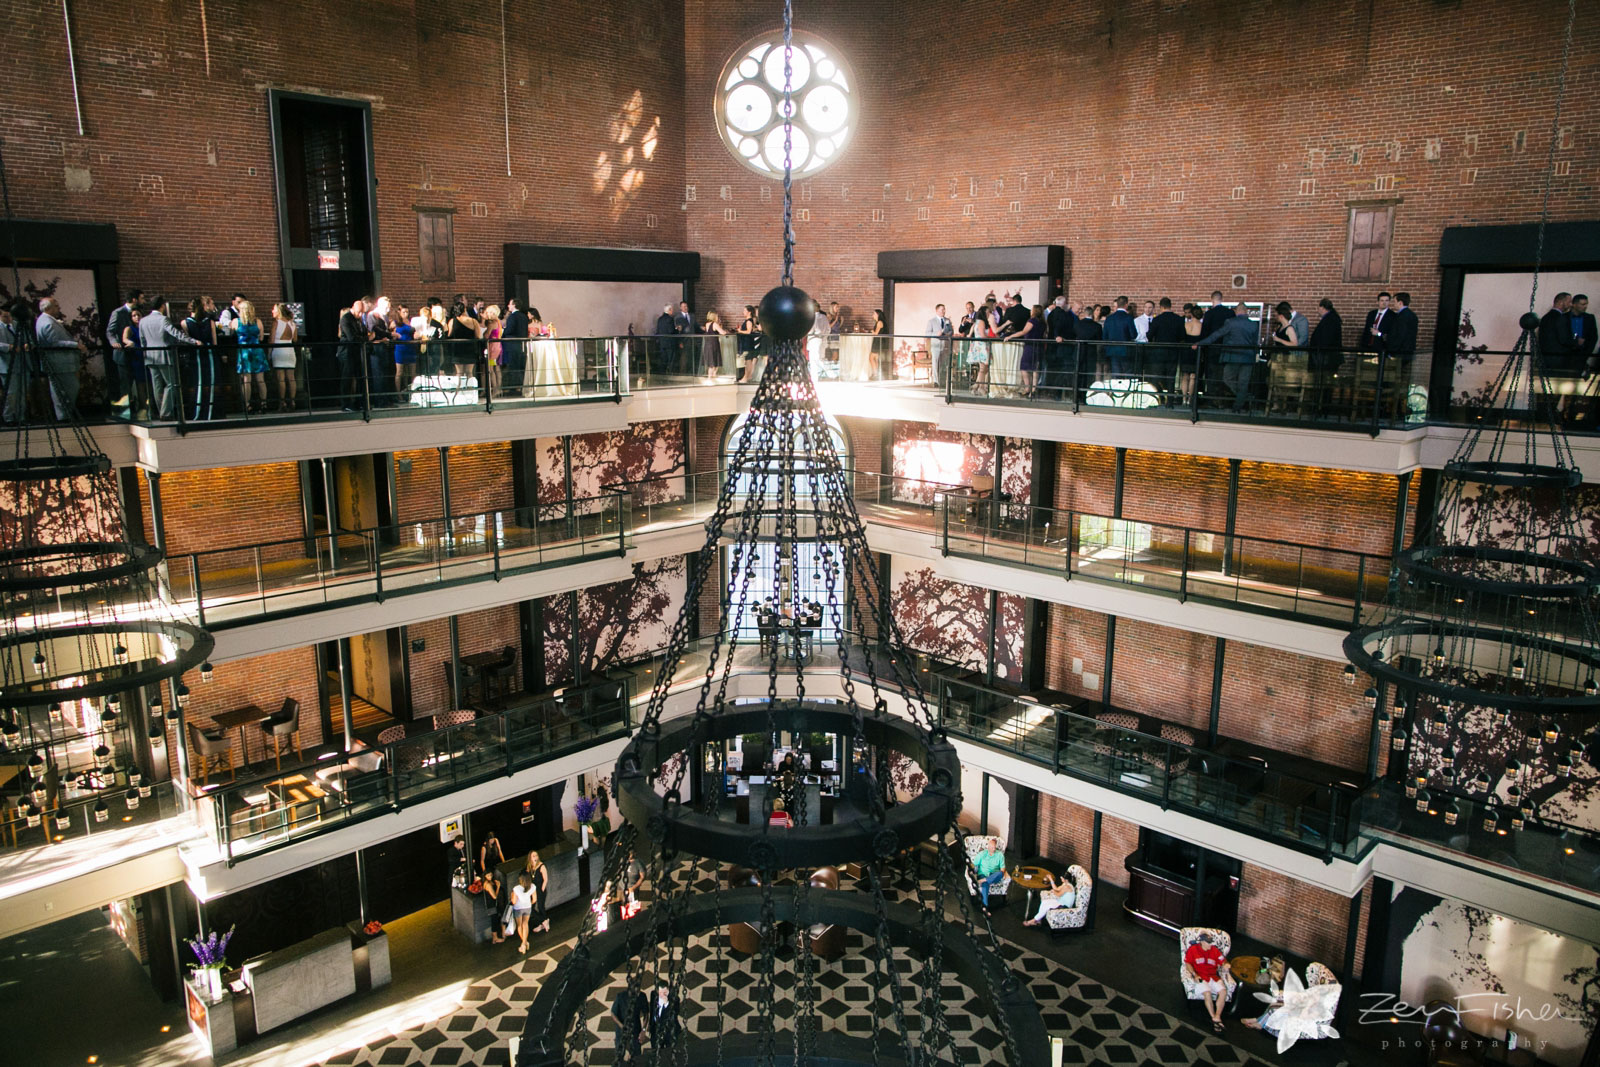 Liberty hotel in boston 2018 world 39 s best hotels for Hotel in boston that used to be a jail